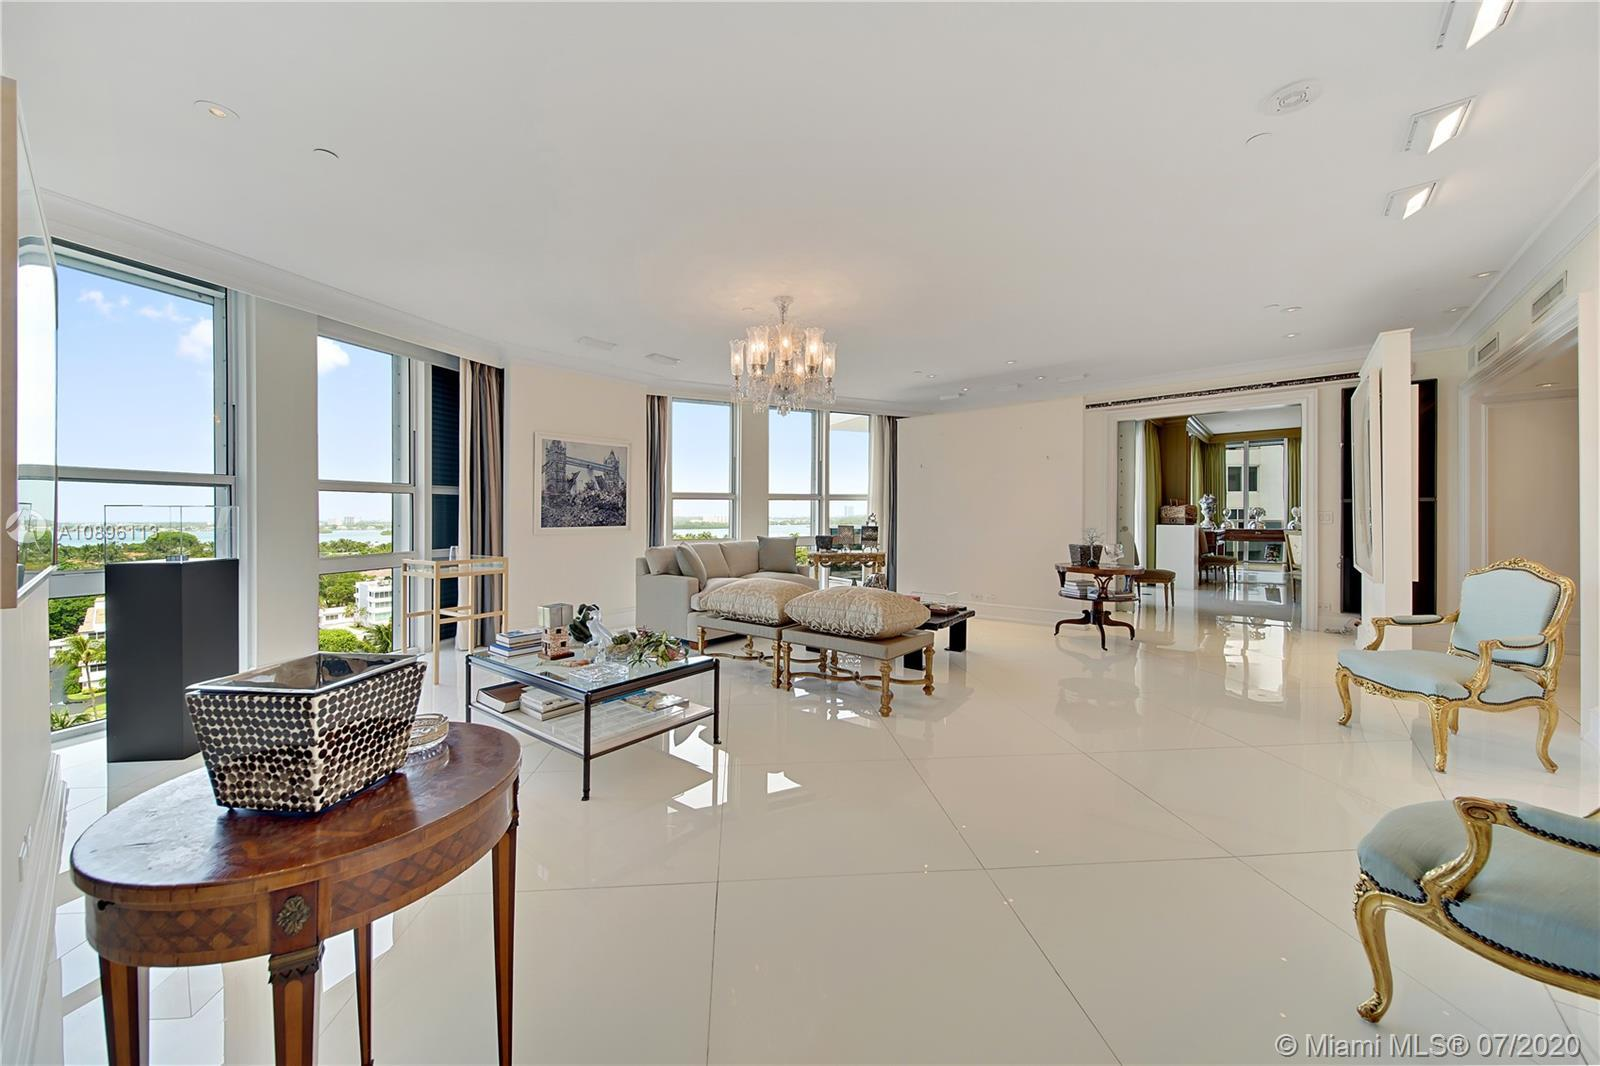 Sophistication and luxury meet in this 6 BD, 6/1 BA custom combination unit in exclusive ocean front